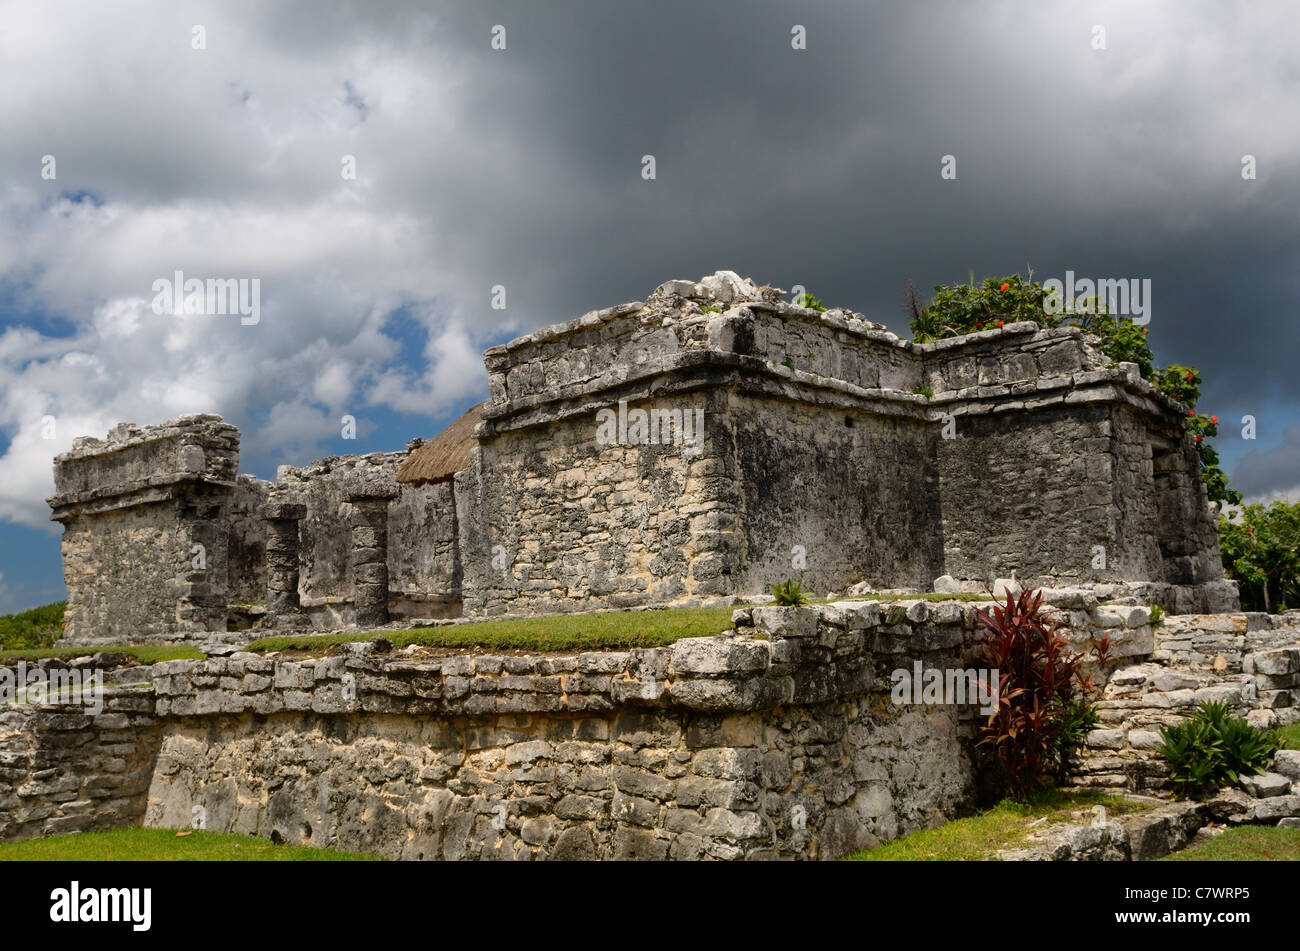 Resevoir house ruin at Tulum Mexico with storm cloud - Stock Image